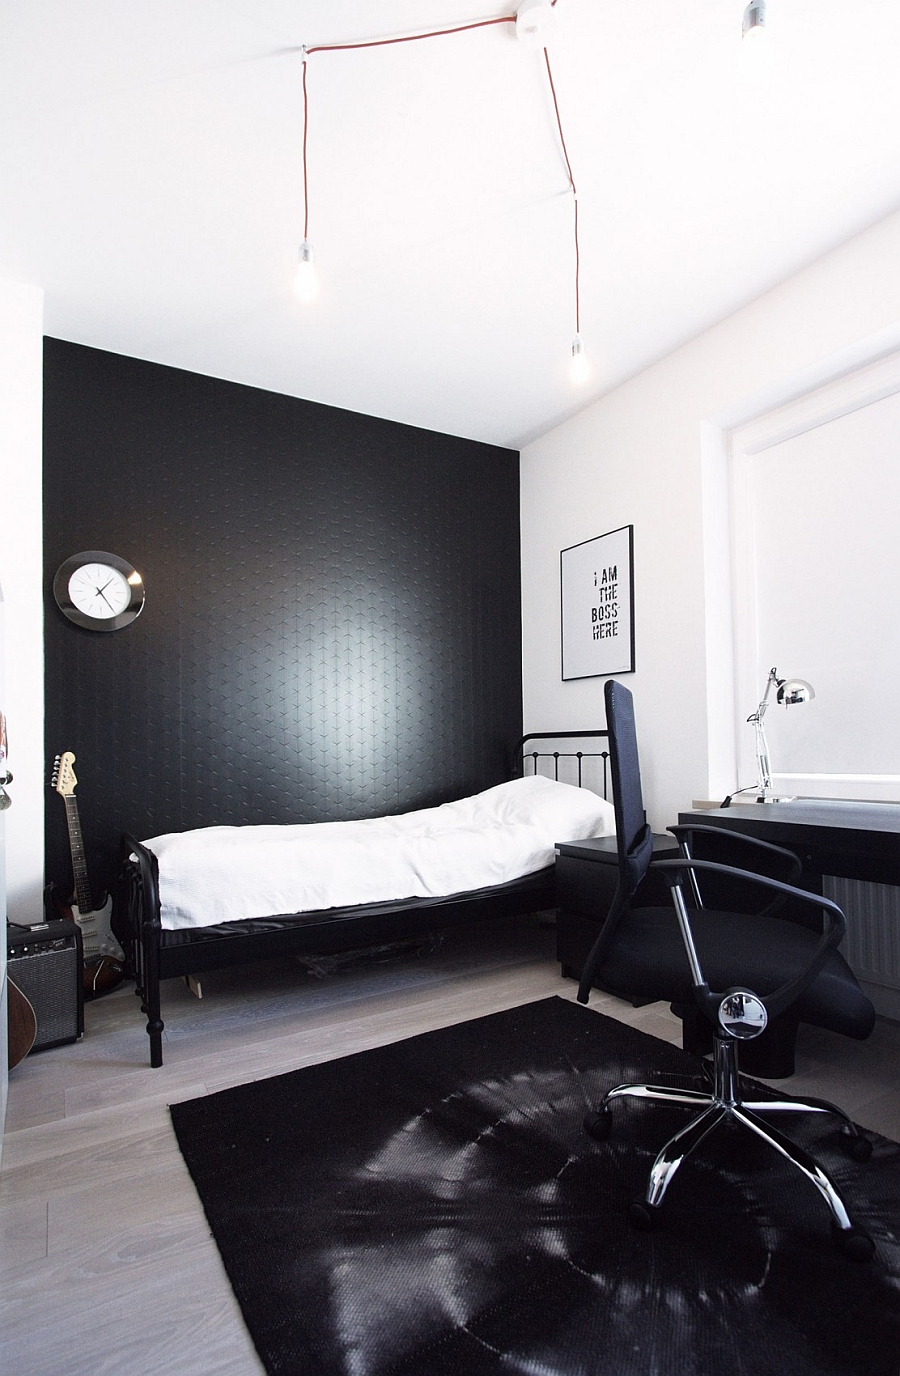 Black accent wall in the semi-minimal bedroom